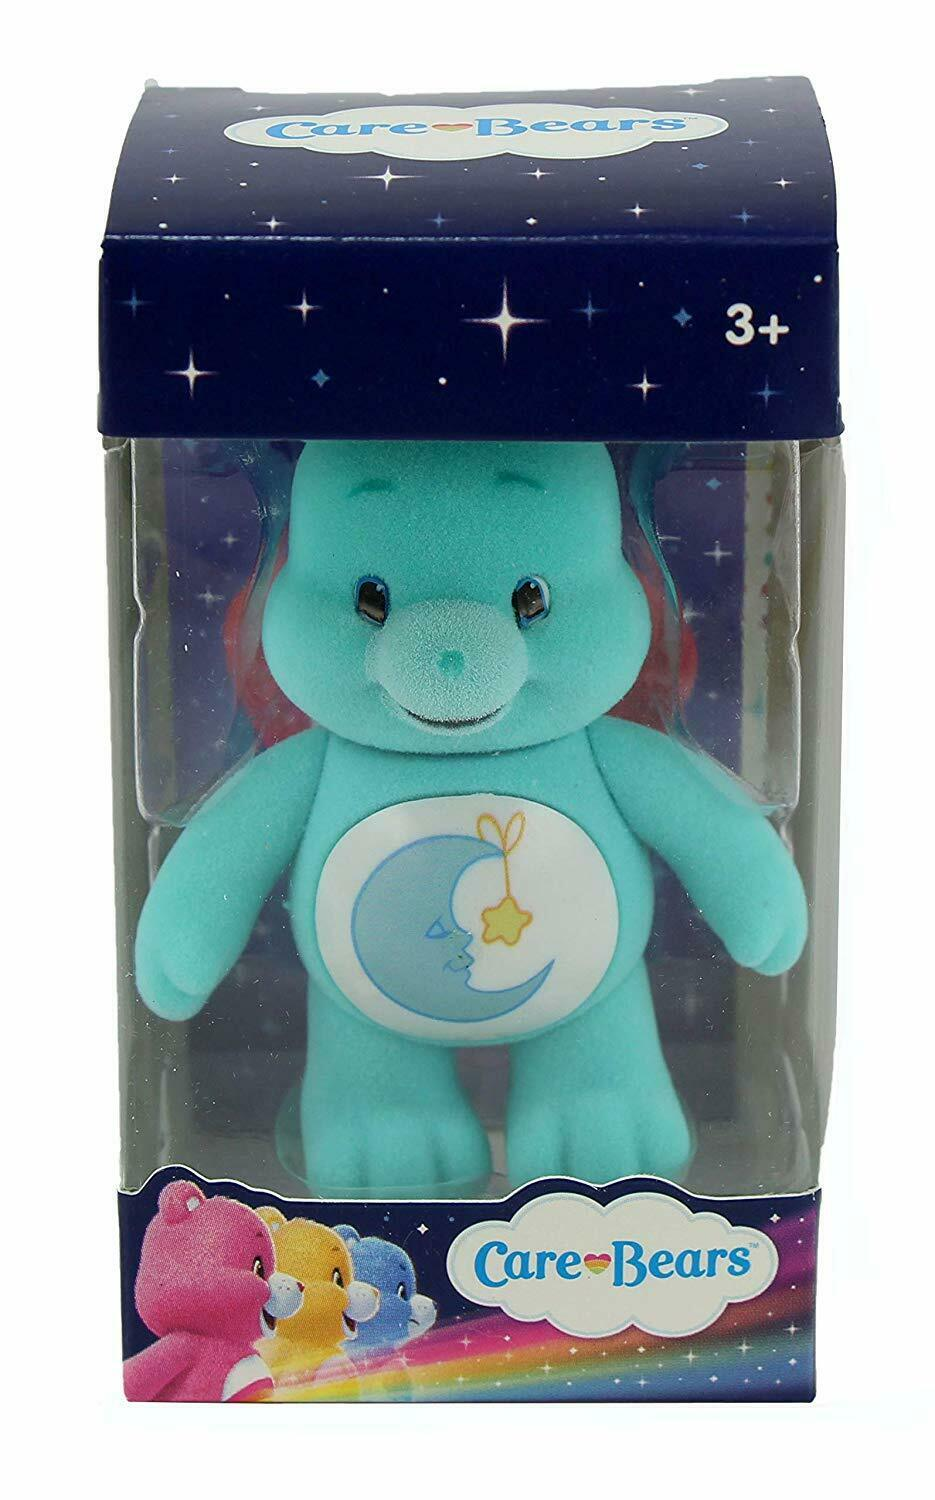 1 Medvidek Care Bears